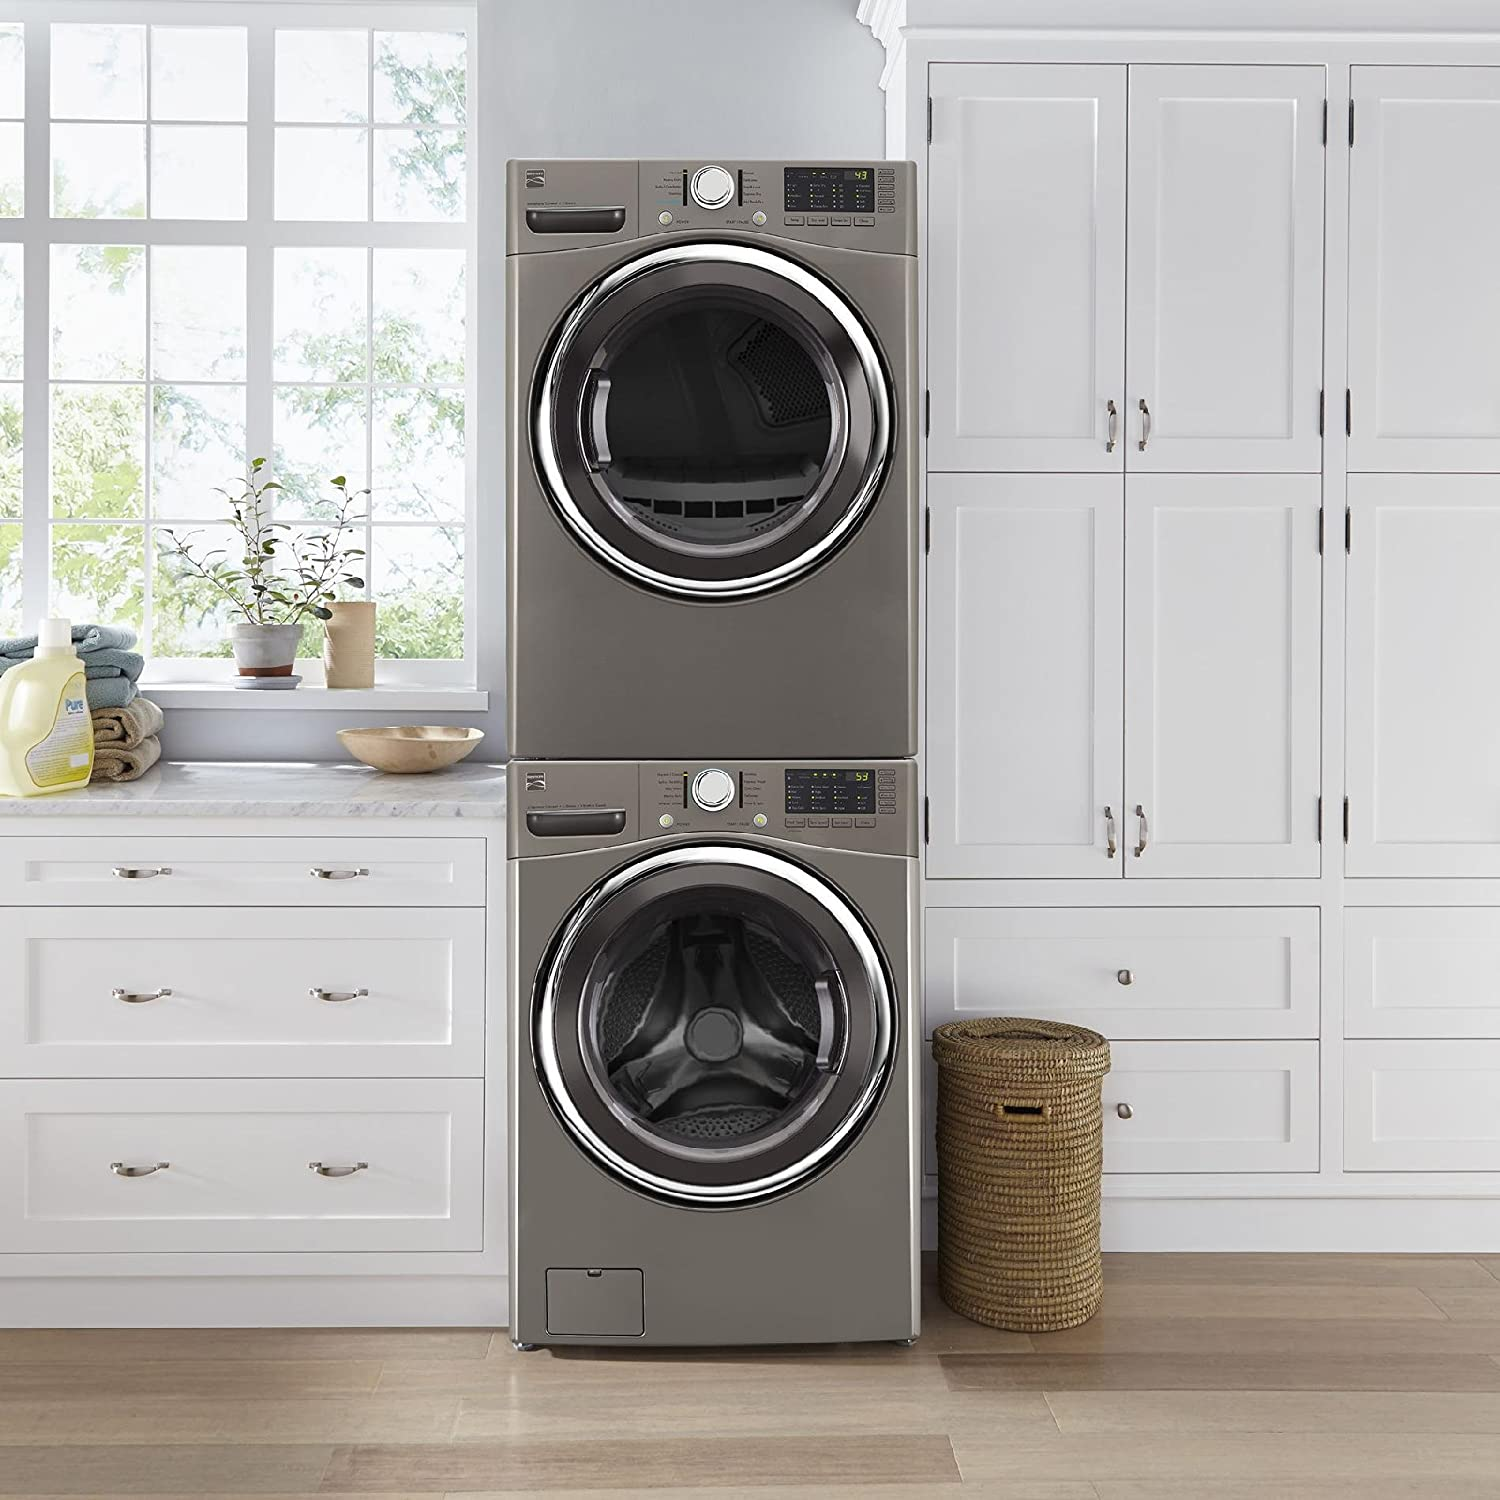 ft Dash Kenmore 81783 Metallic Elite Silver 7.4 Cubic Feet Smart Electric Dryer with Accela Steam and Includes Delivery and Hookup Compatible Alexa cu